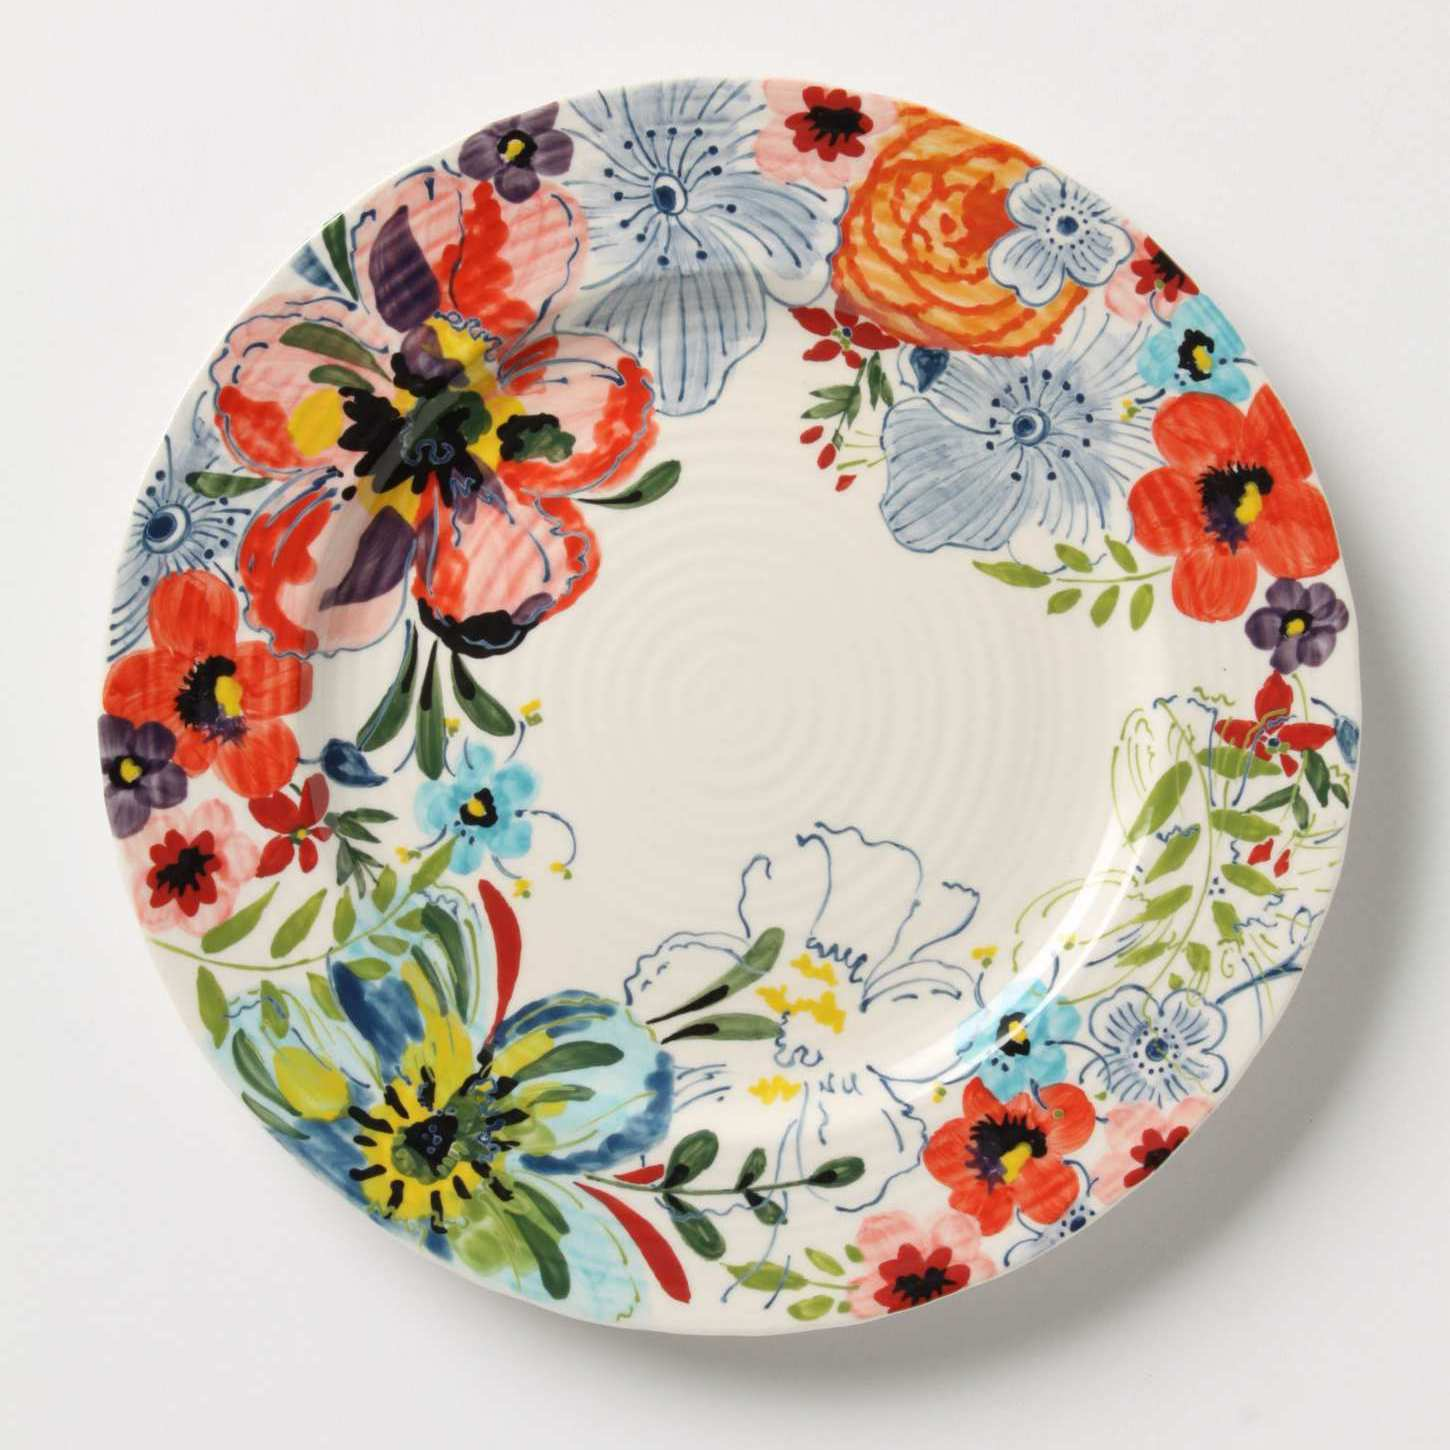 Wall Flowers: Decorative Plates in the Dining Room - Swoon ...